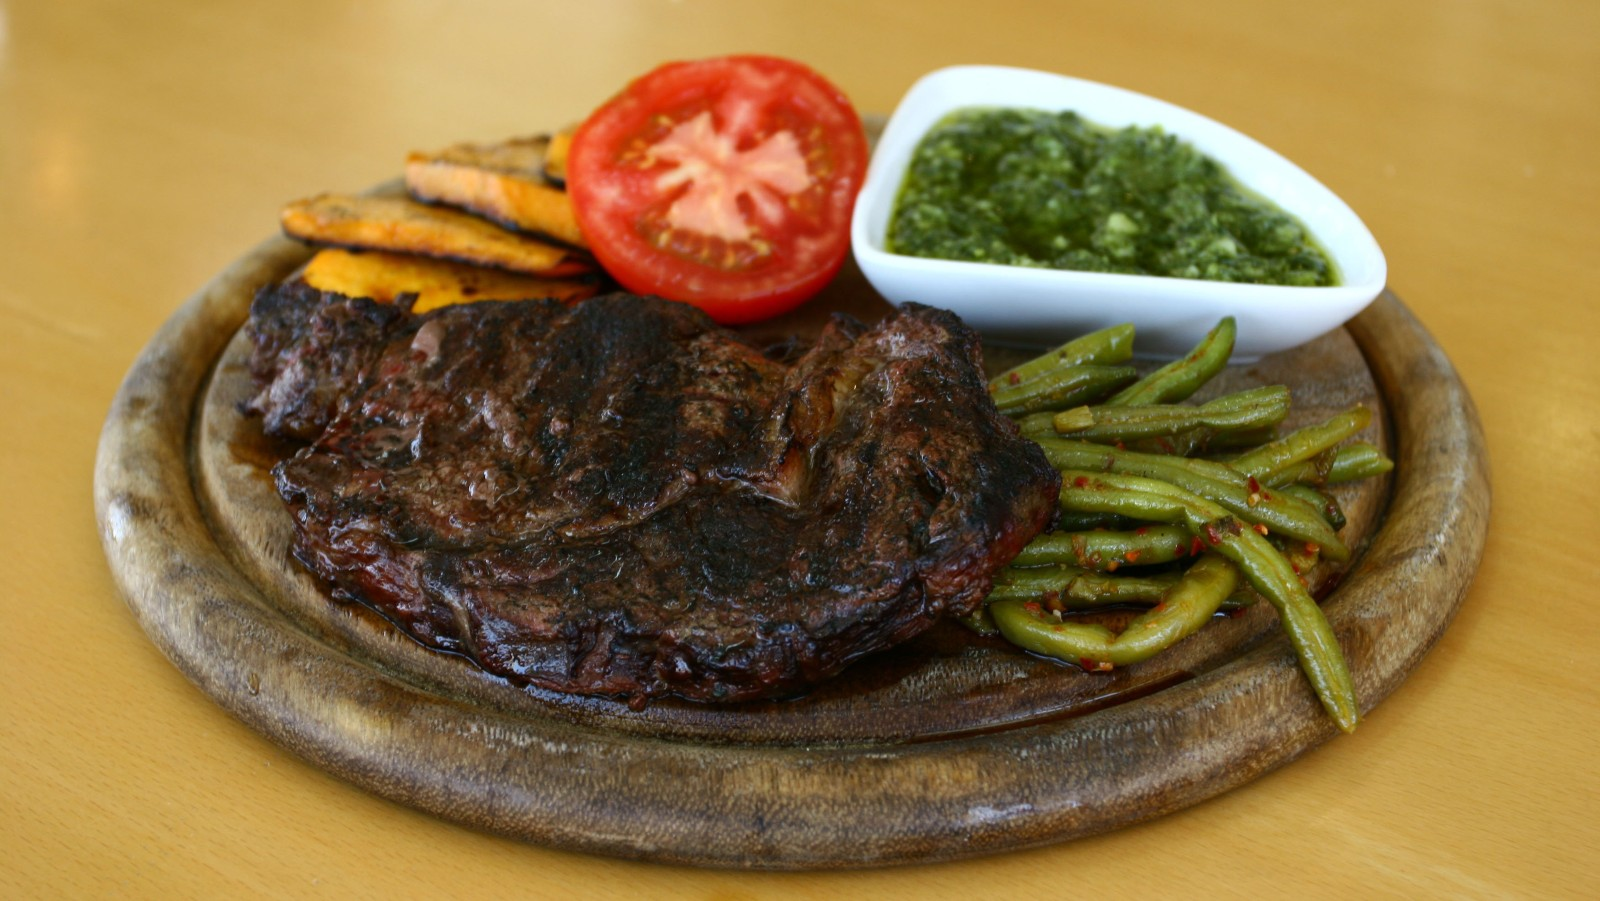 Dairy And Red Meat Increase Risk Of Colorectal Cancer Israel21c